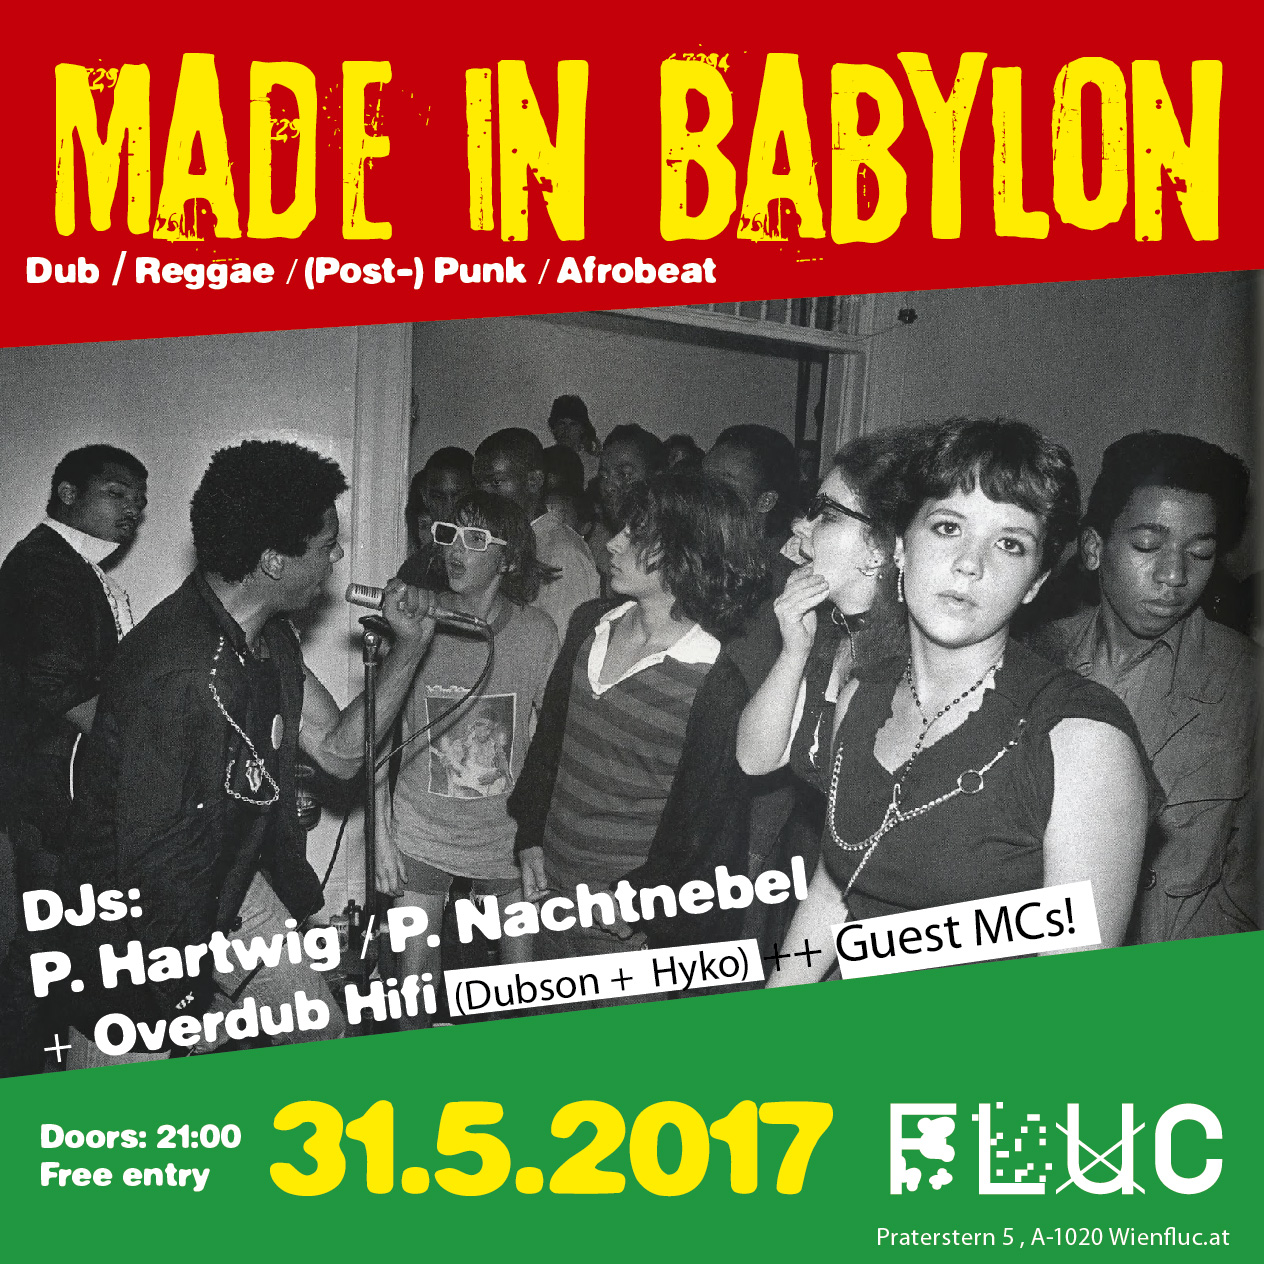 Made in Babylon